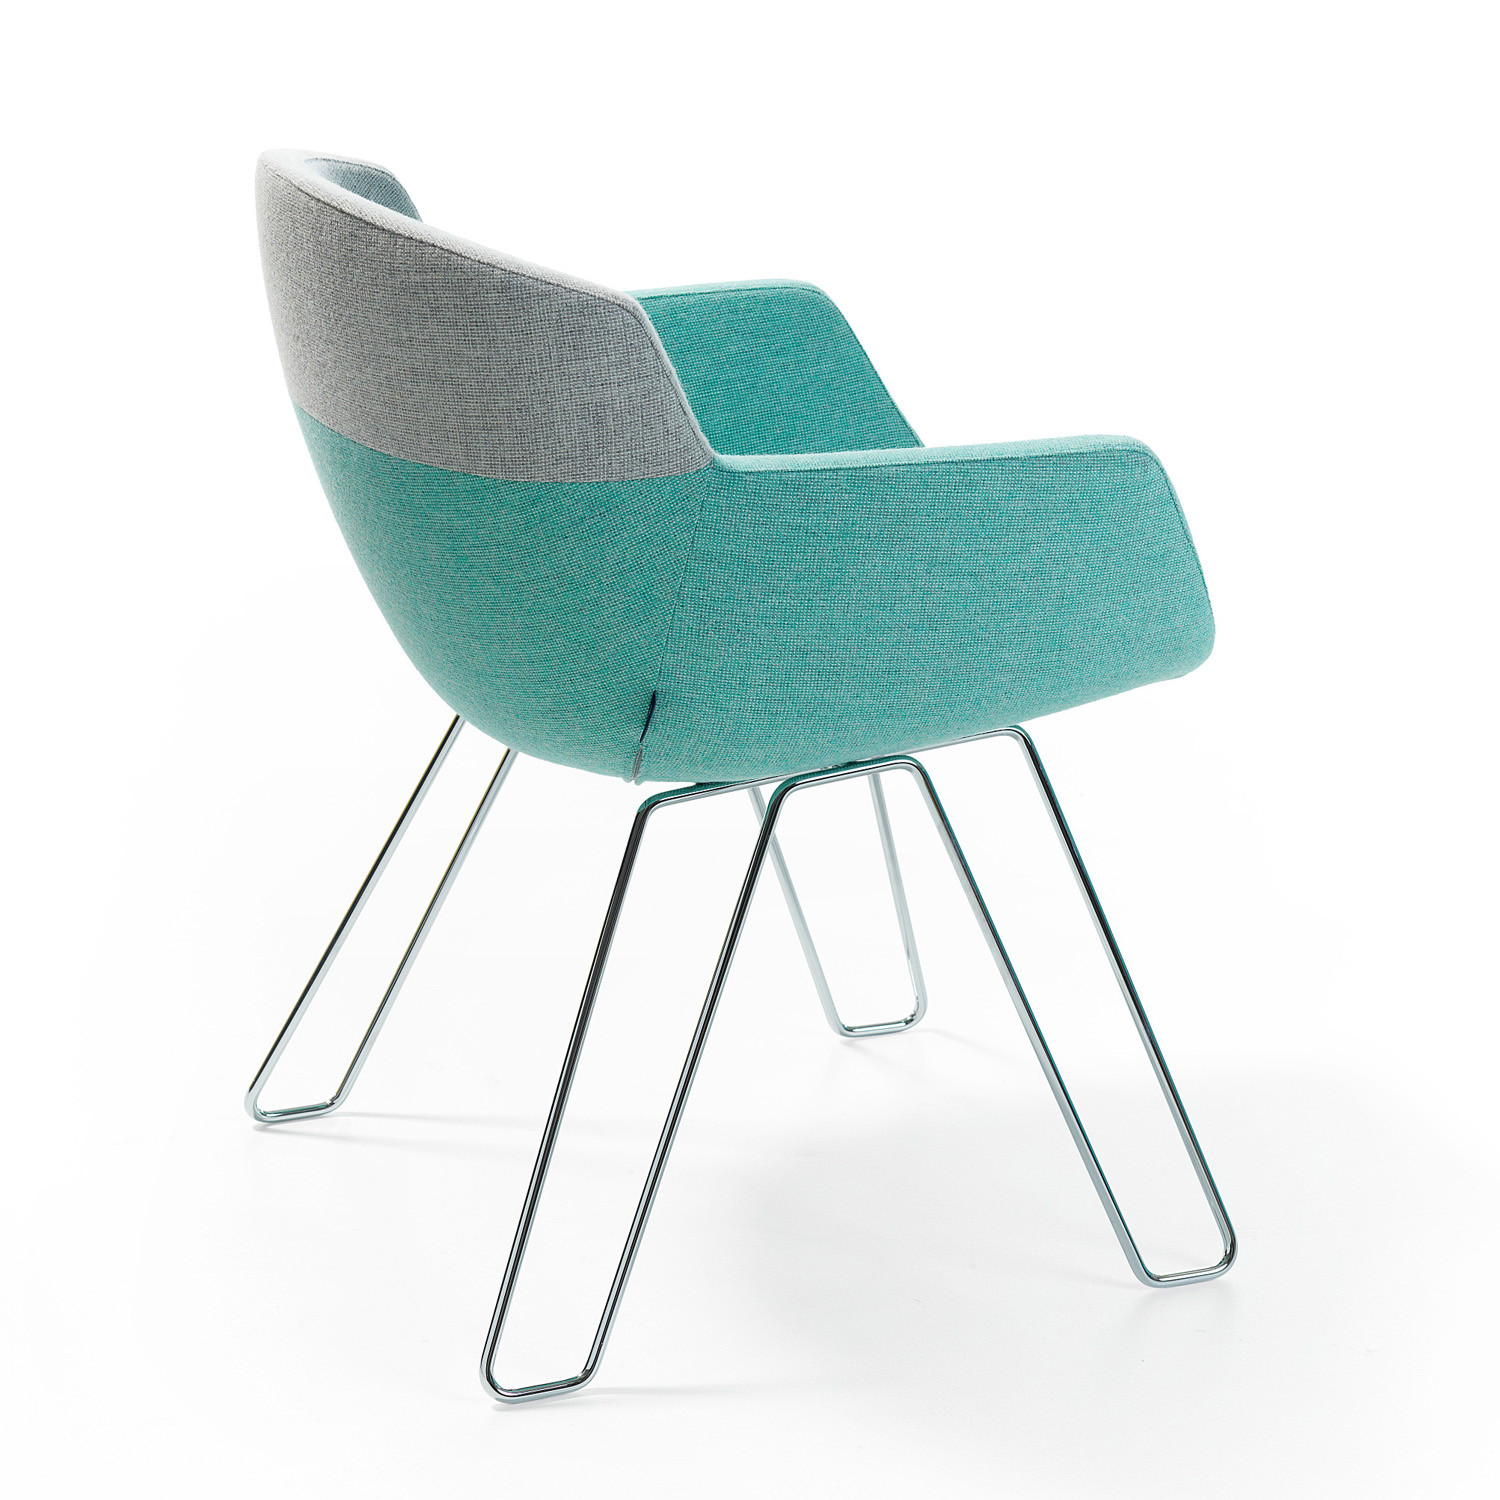 Mood Armchair with wire-frame